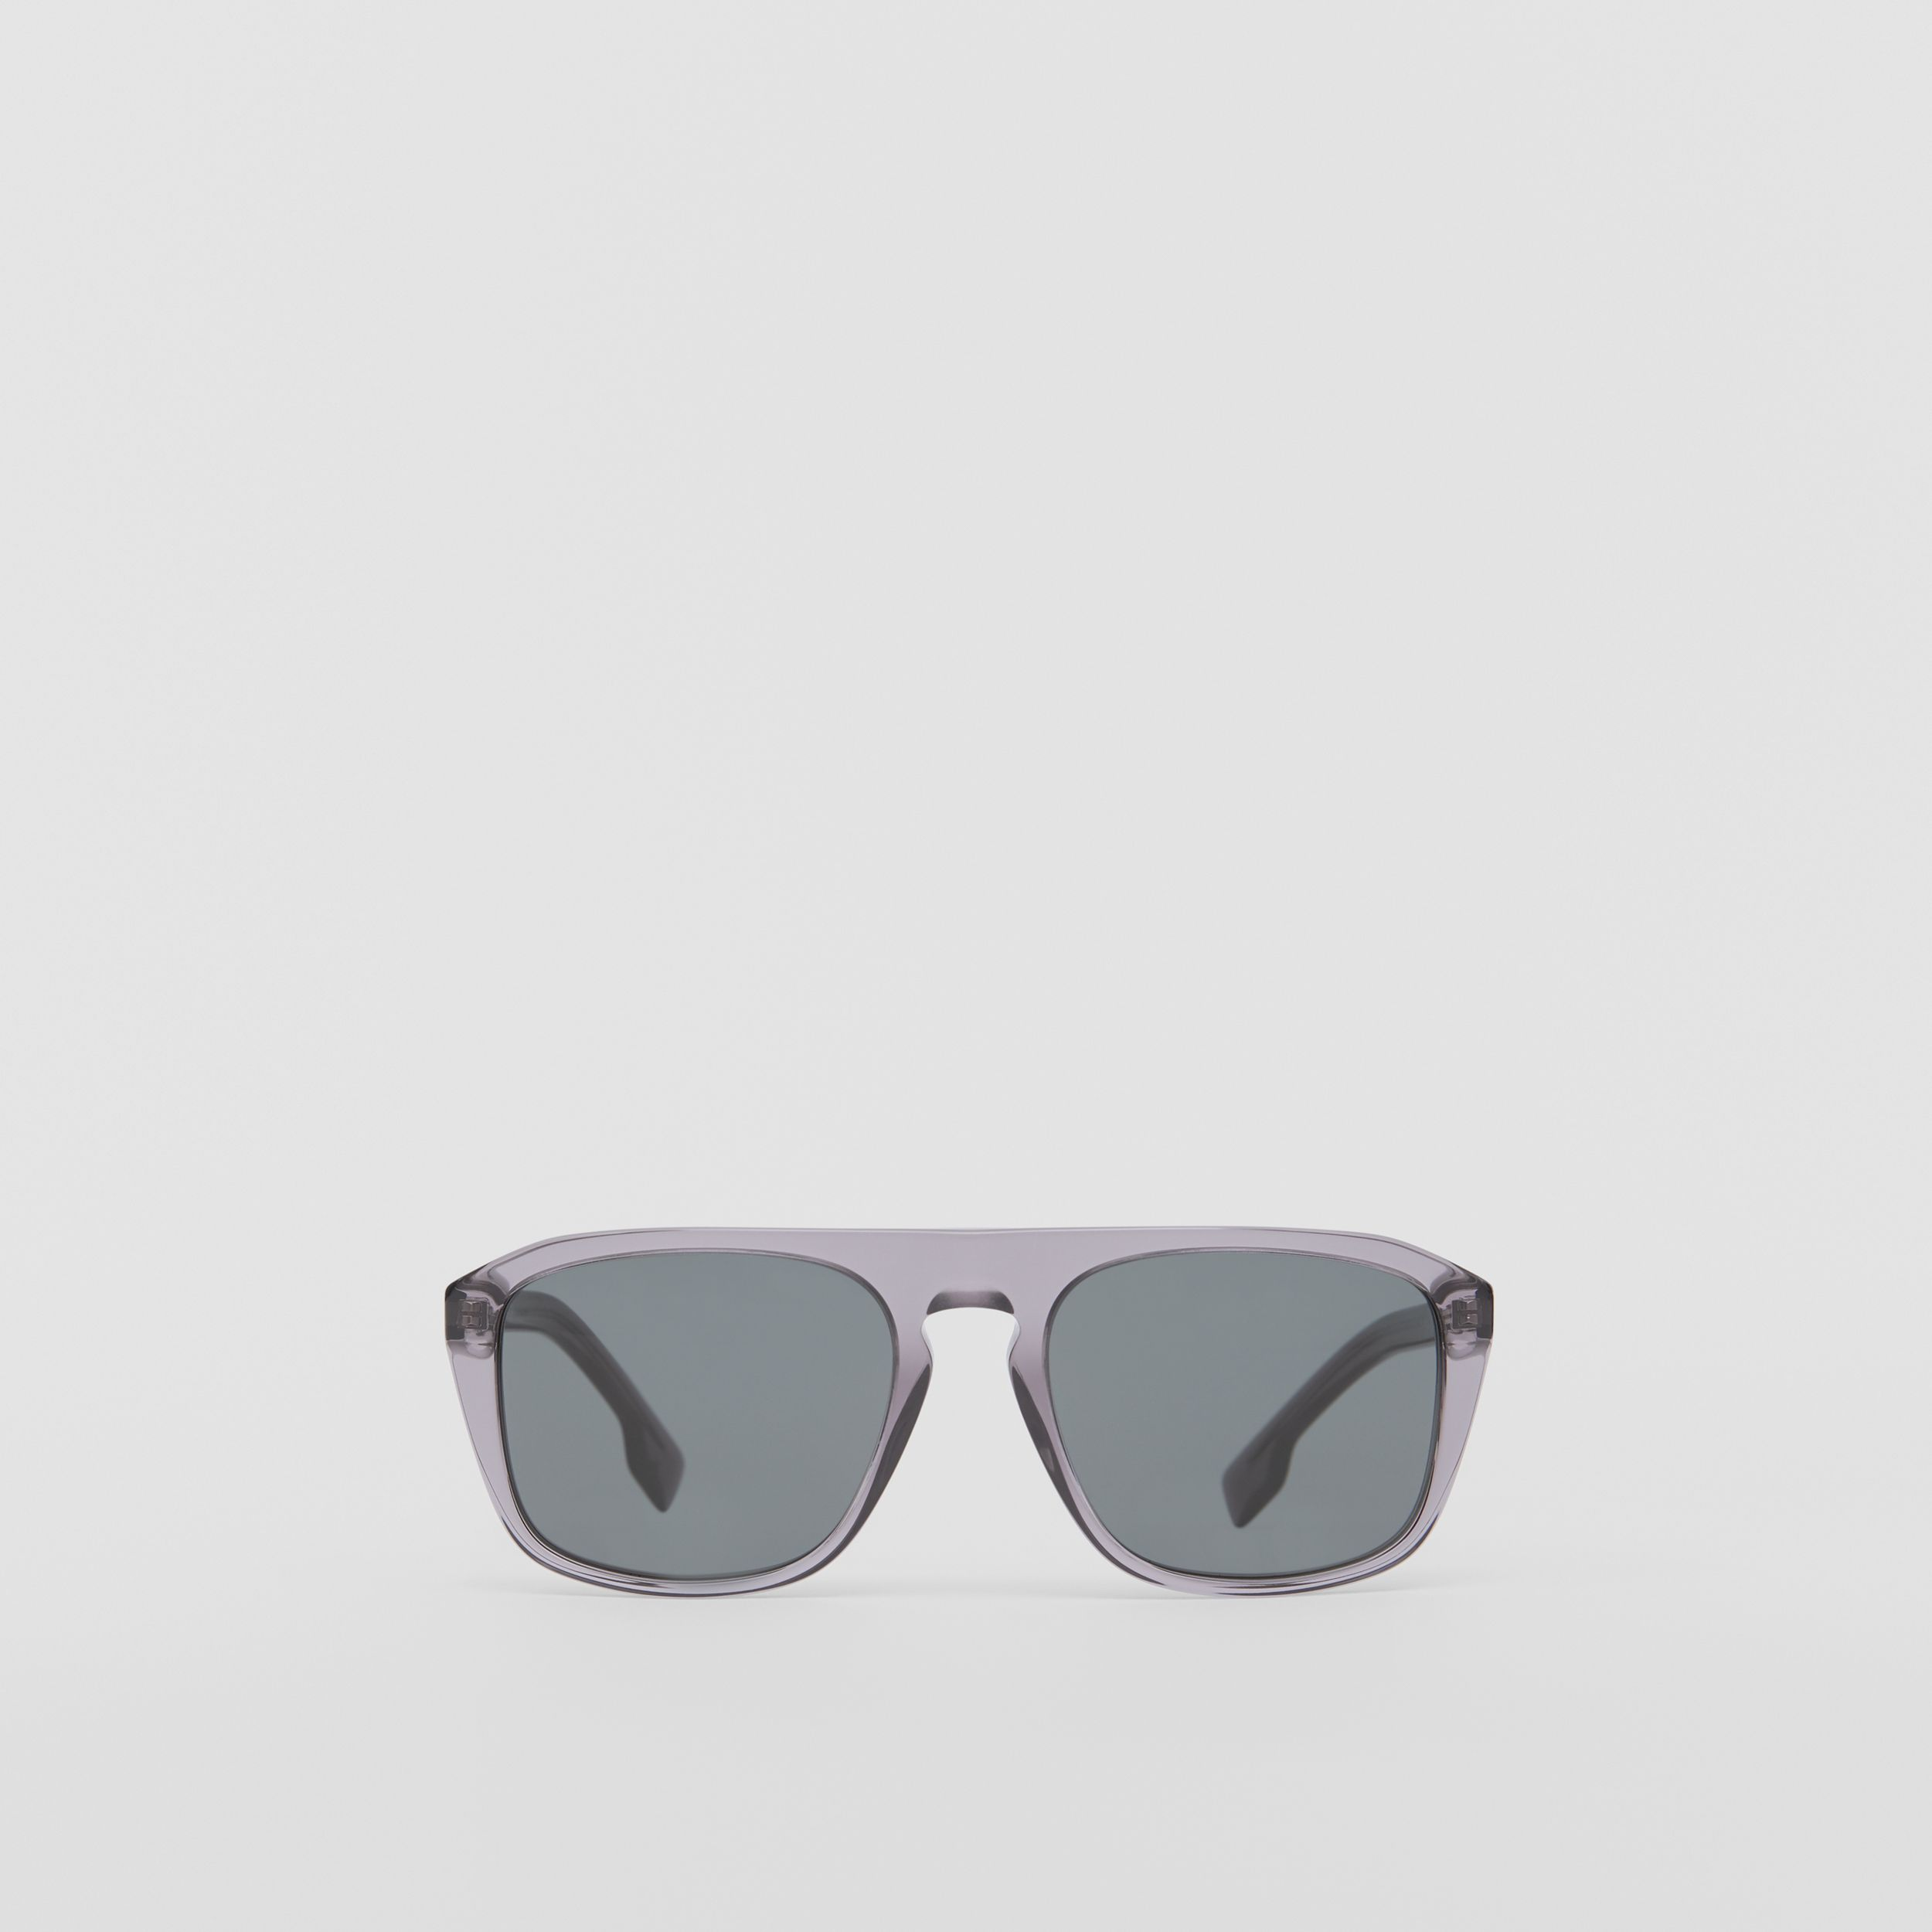 Square Frame Sunglasses in Grey - Men | Burberry Singapore - 1